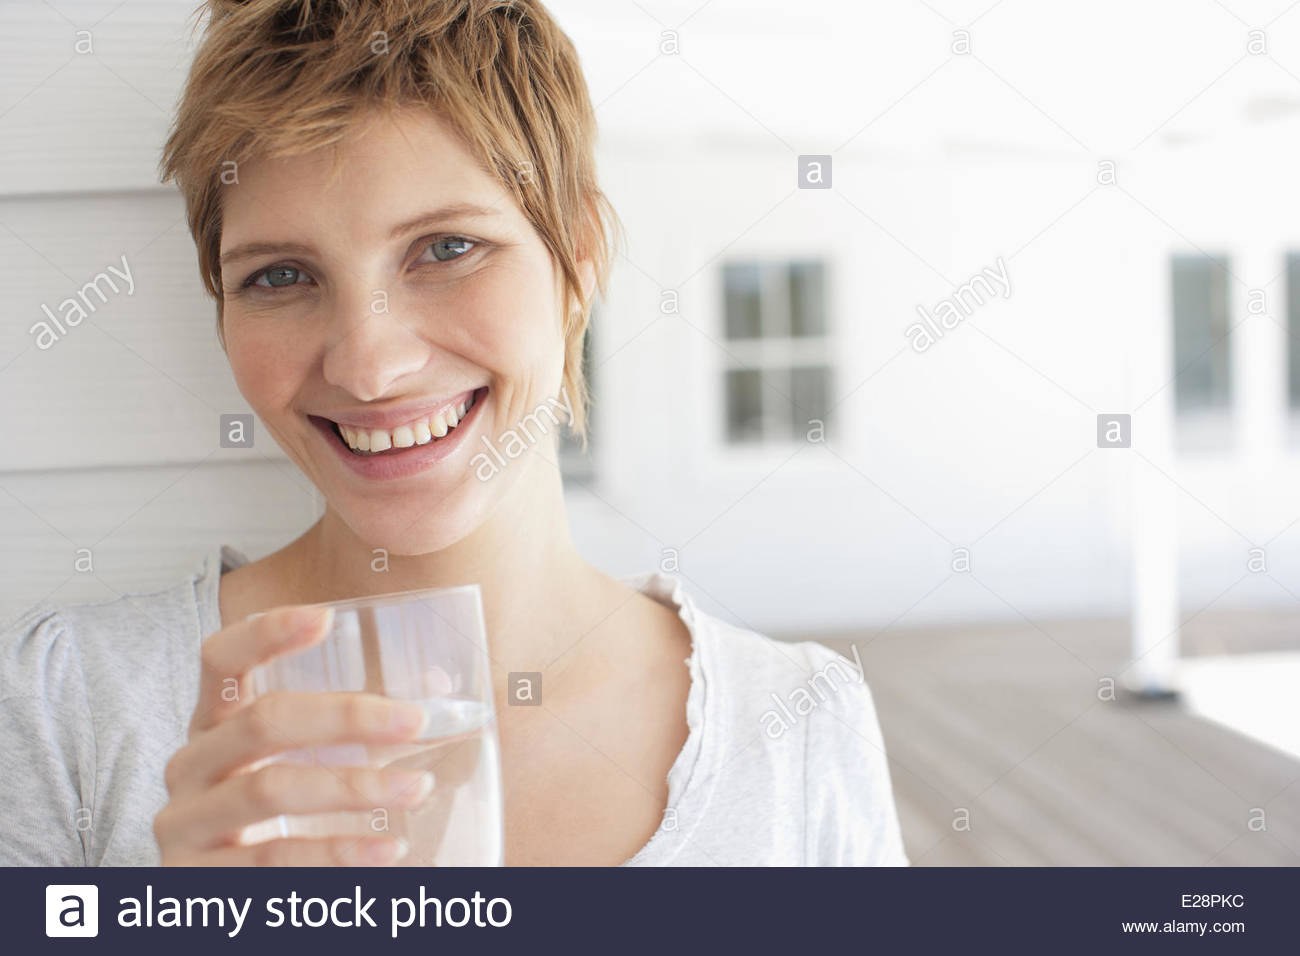 Pregnant woman drinking water Stock Photo